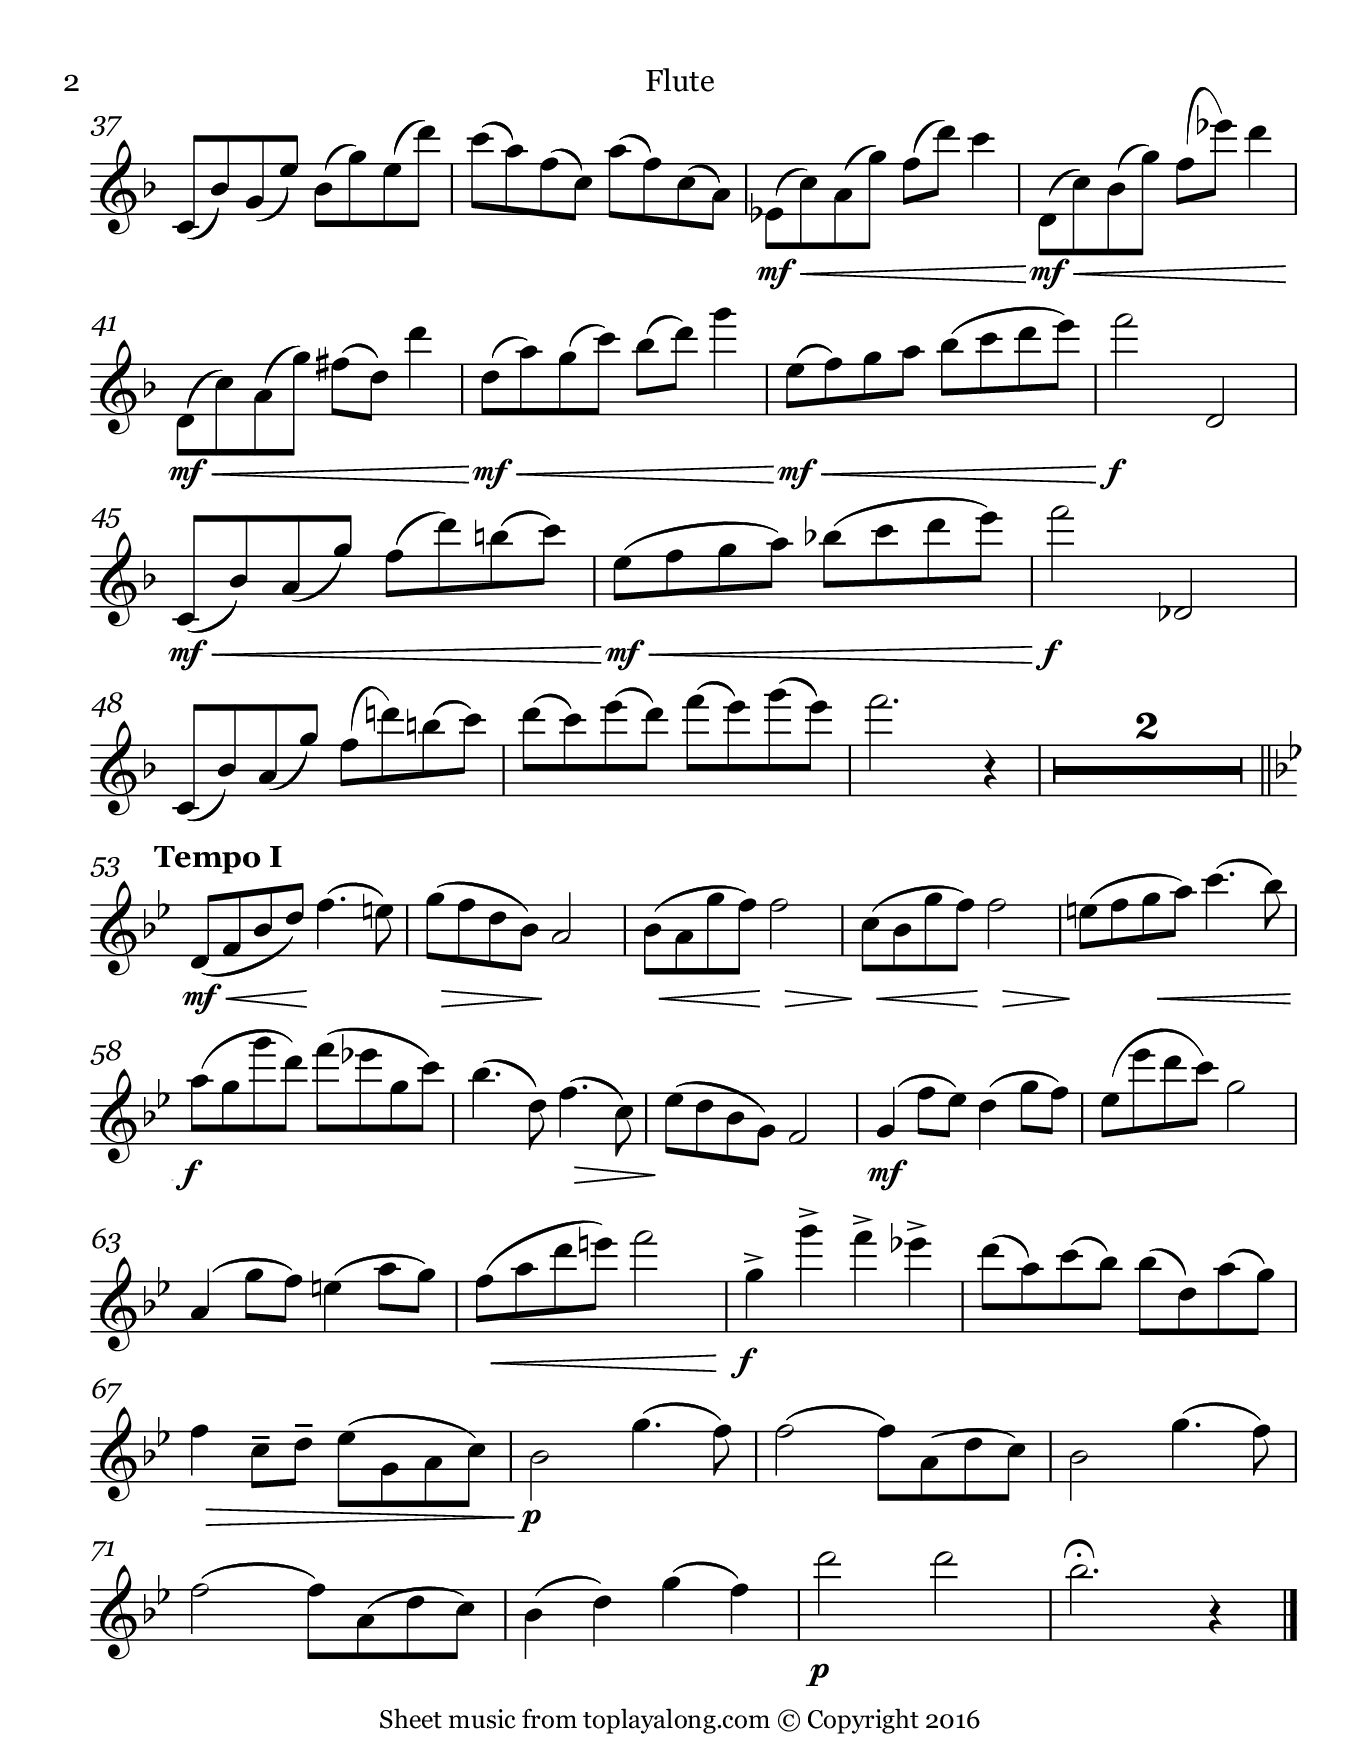 Pastorale Op. 23 No. 1 by Rieding. Sheet music for Flute, page 2.